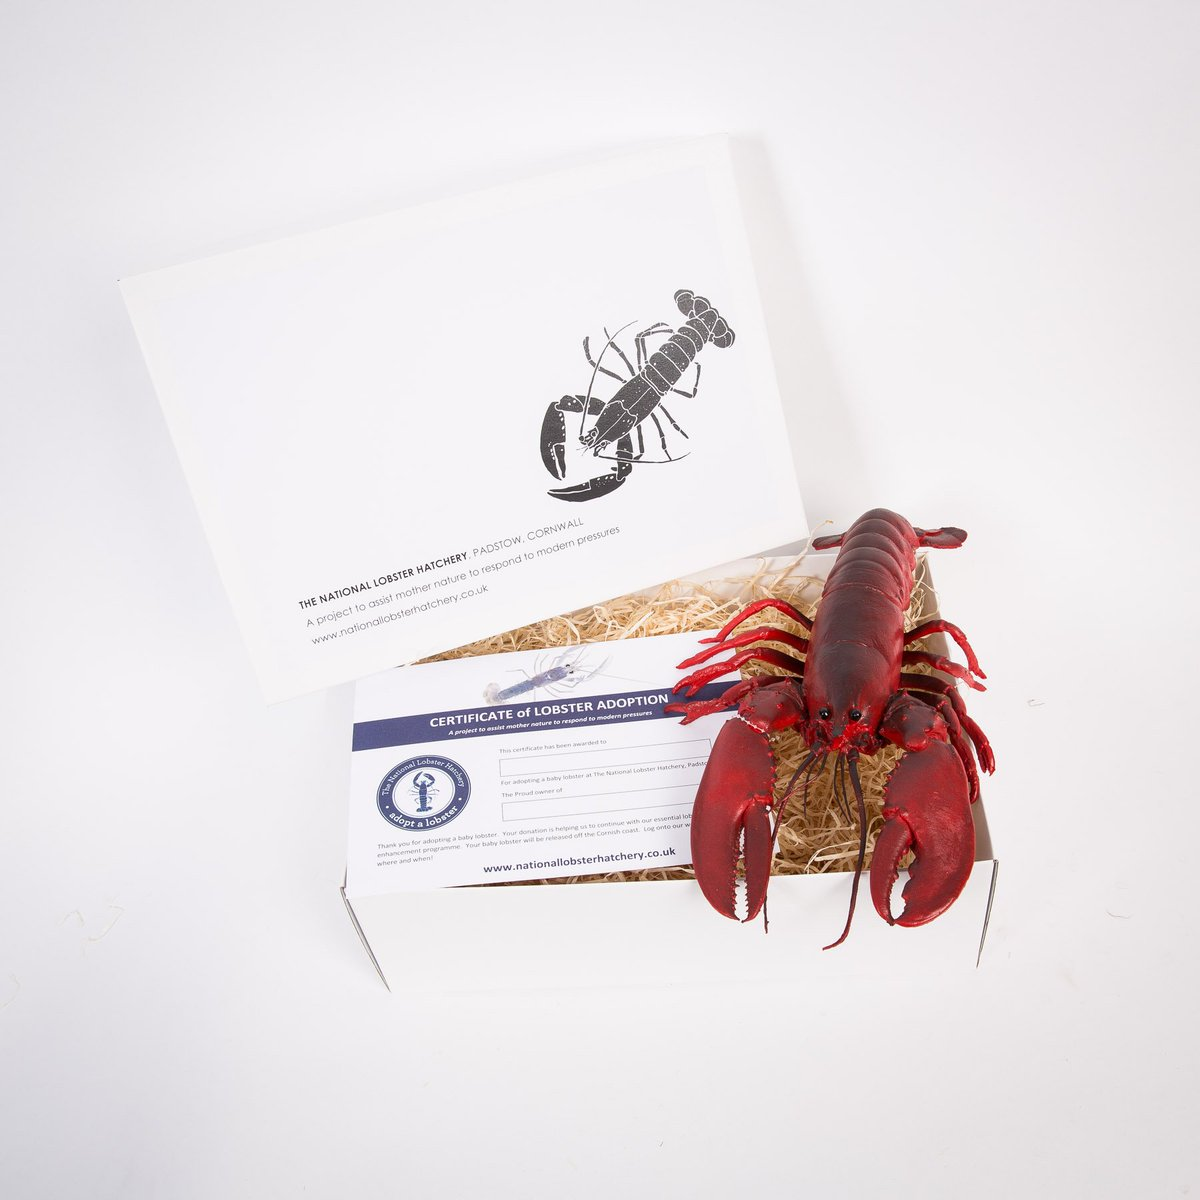 #Adopt a Lobster gift packs for Christmas #charitygiving supporting marine conservation @PadstowLobster start at £15 http://bit.ly/lobstershop ...